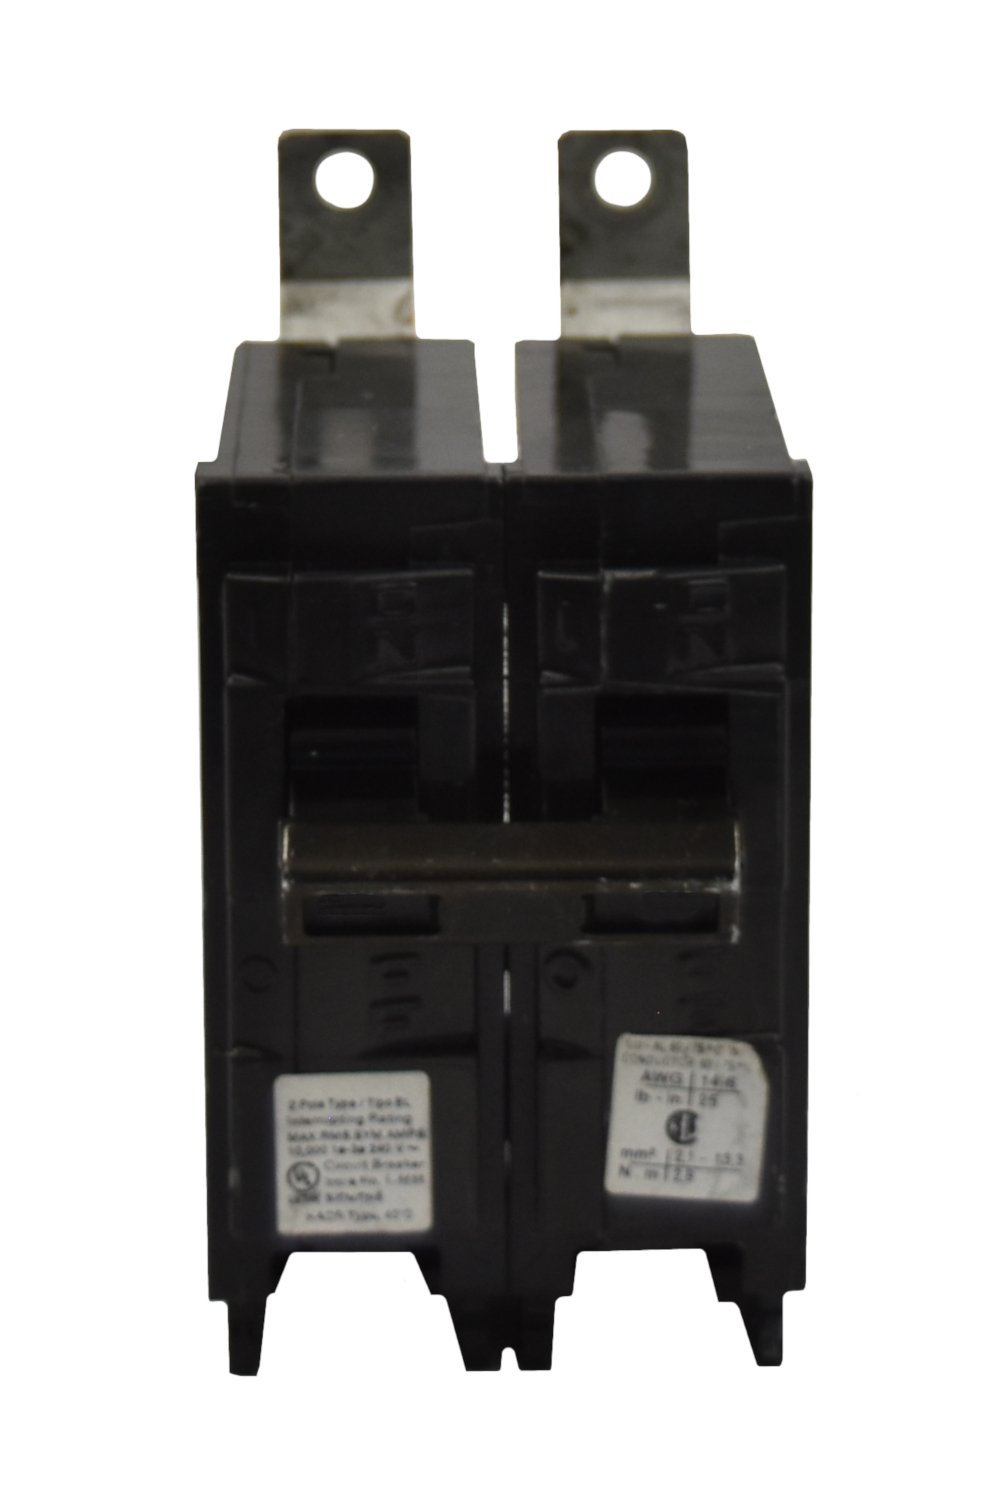 Siemens B260H Circuit Breakers